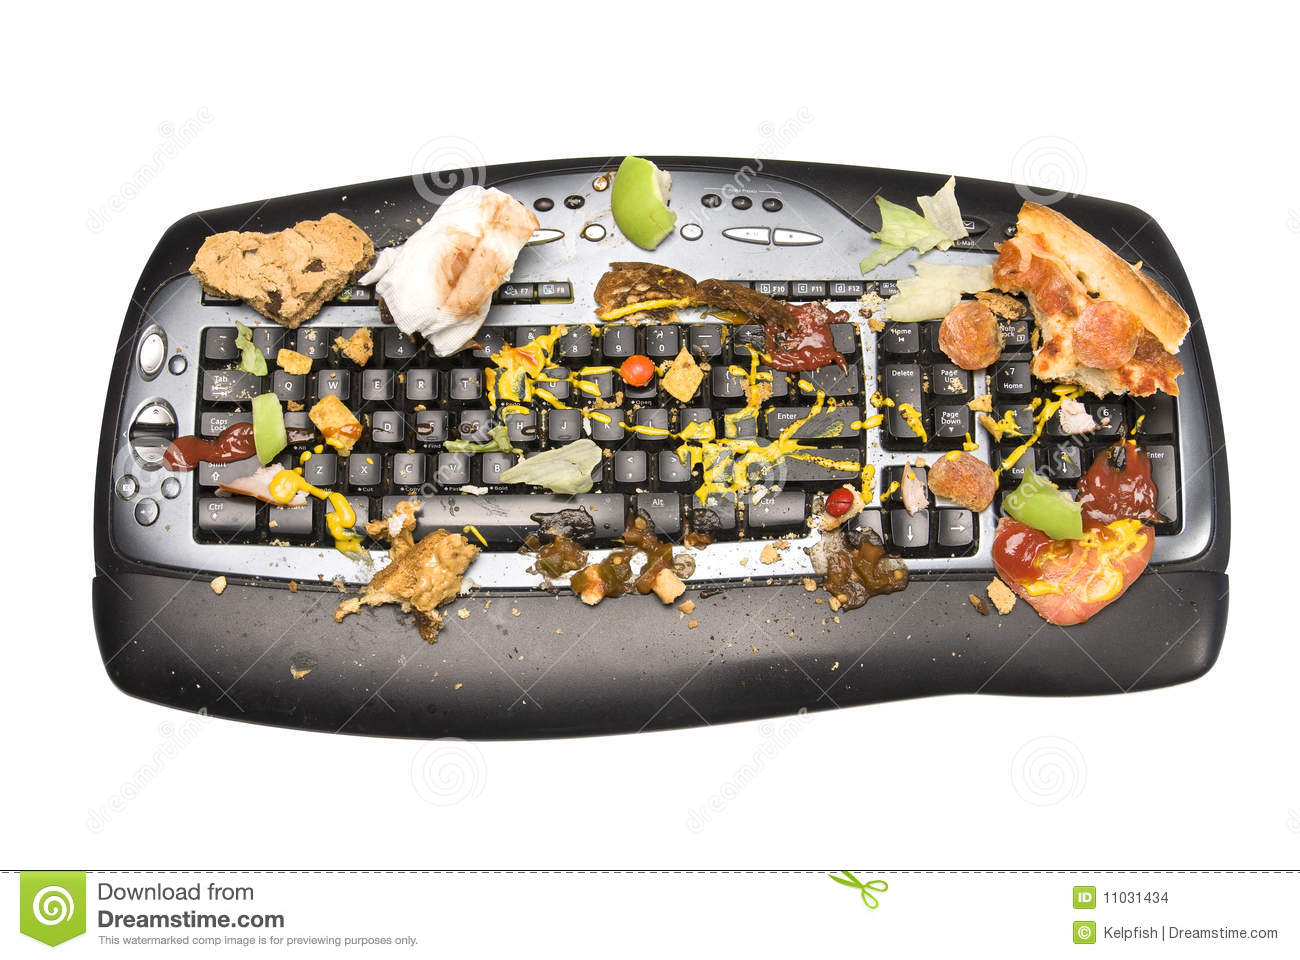 keyboard covered with food remnants. We all know that we are guilty ...